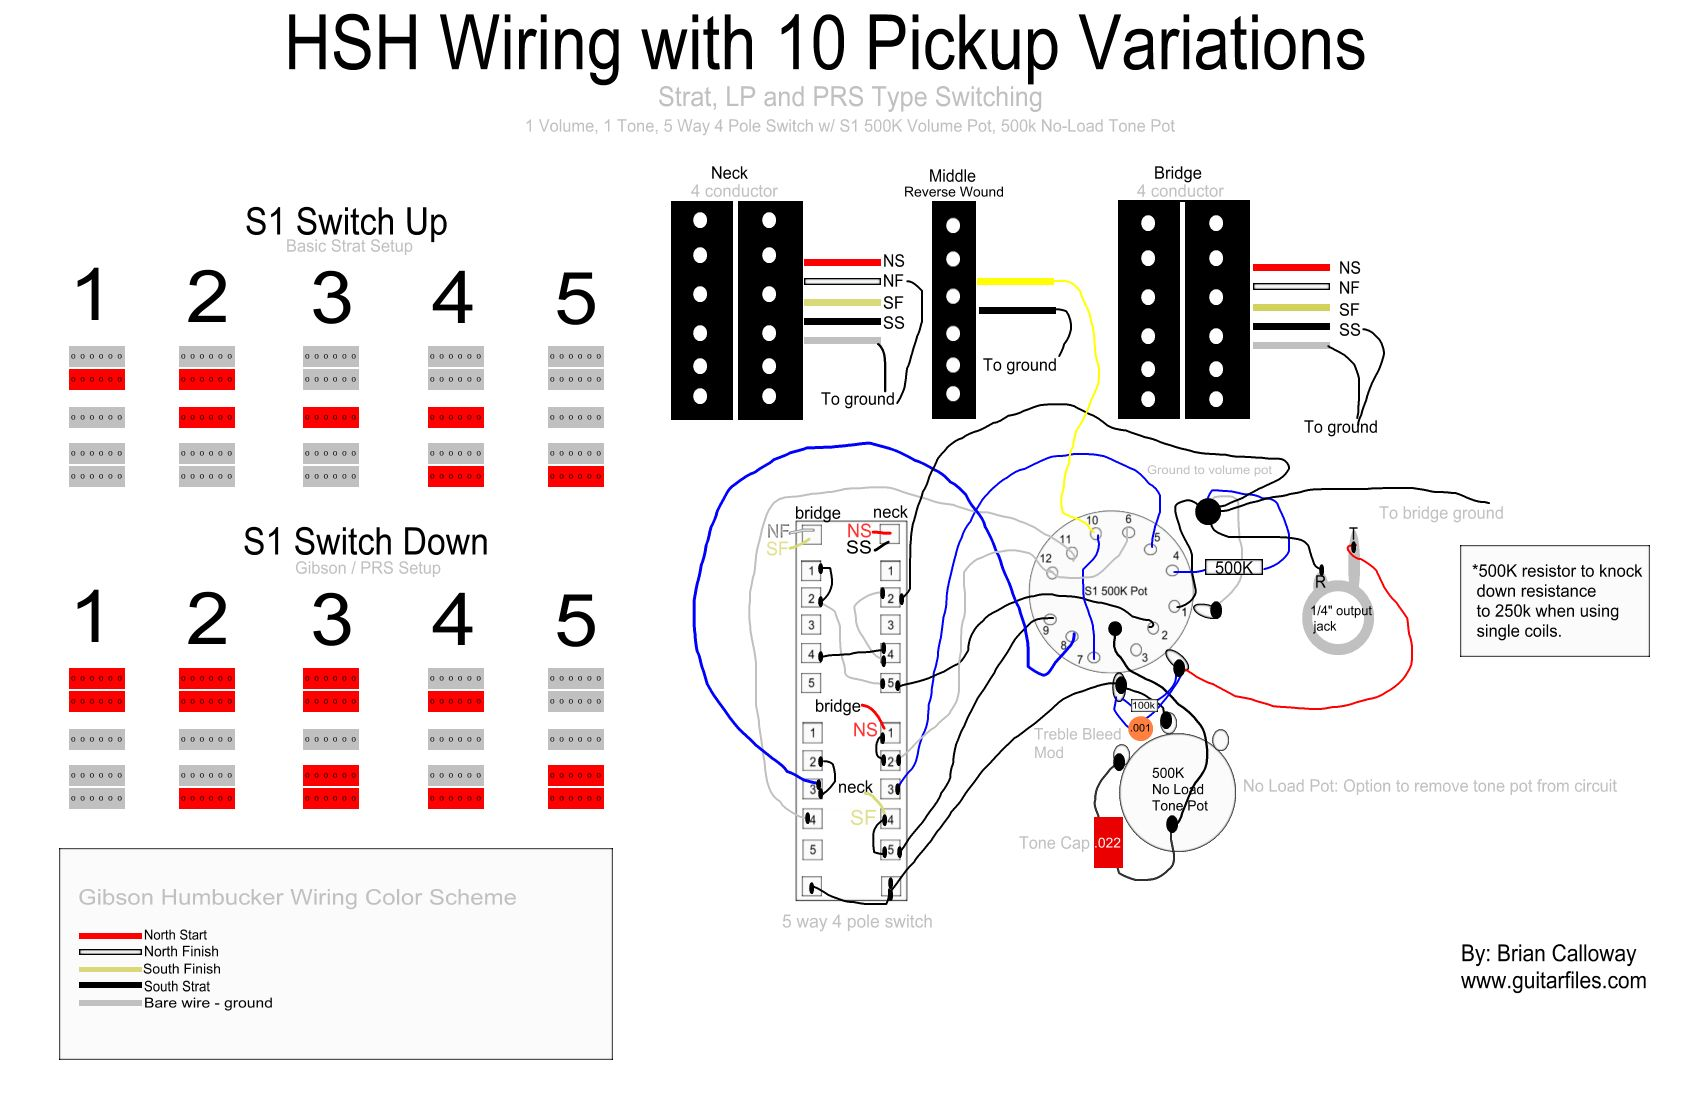 hsh guitar wiring 10 pickup combinations 4 pole switch and s1 hsh guitar wiring 10 pickup combinations 4 pole switch and s1 switching system